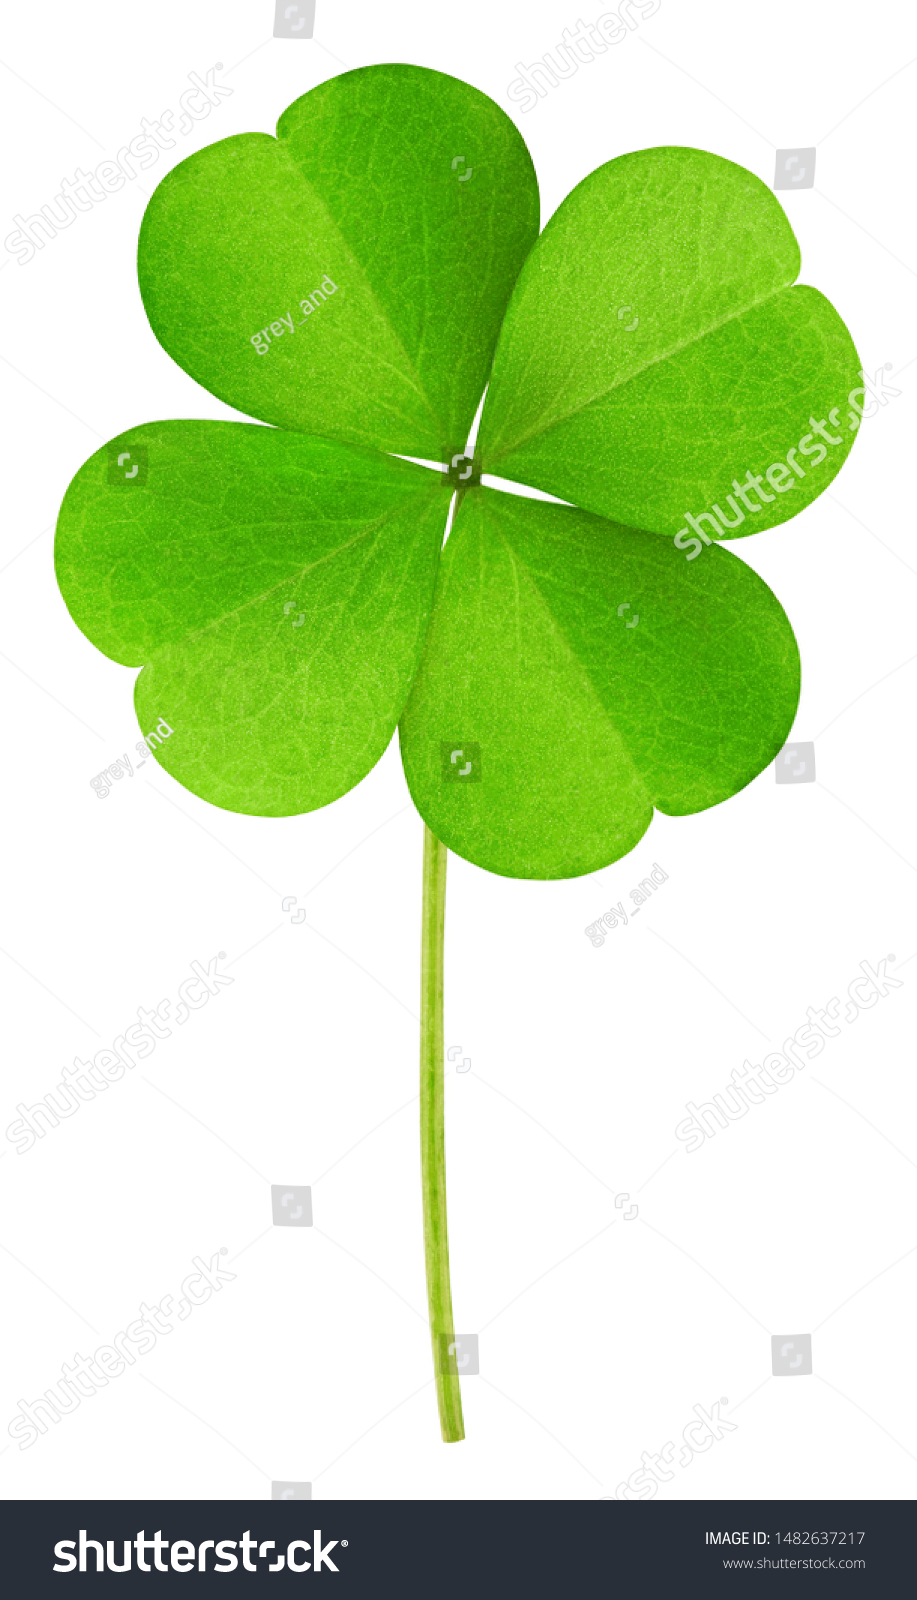 clover isolated on white background, clipping path, full depth of field #1482637217